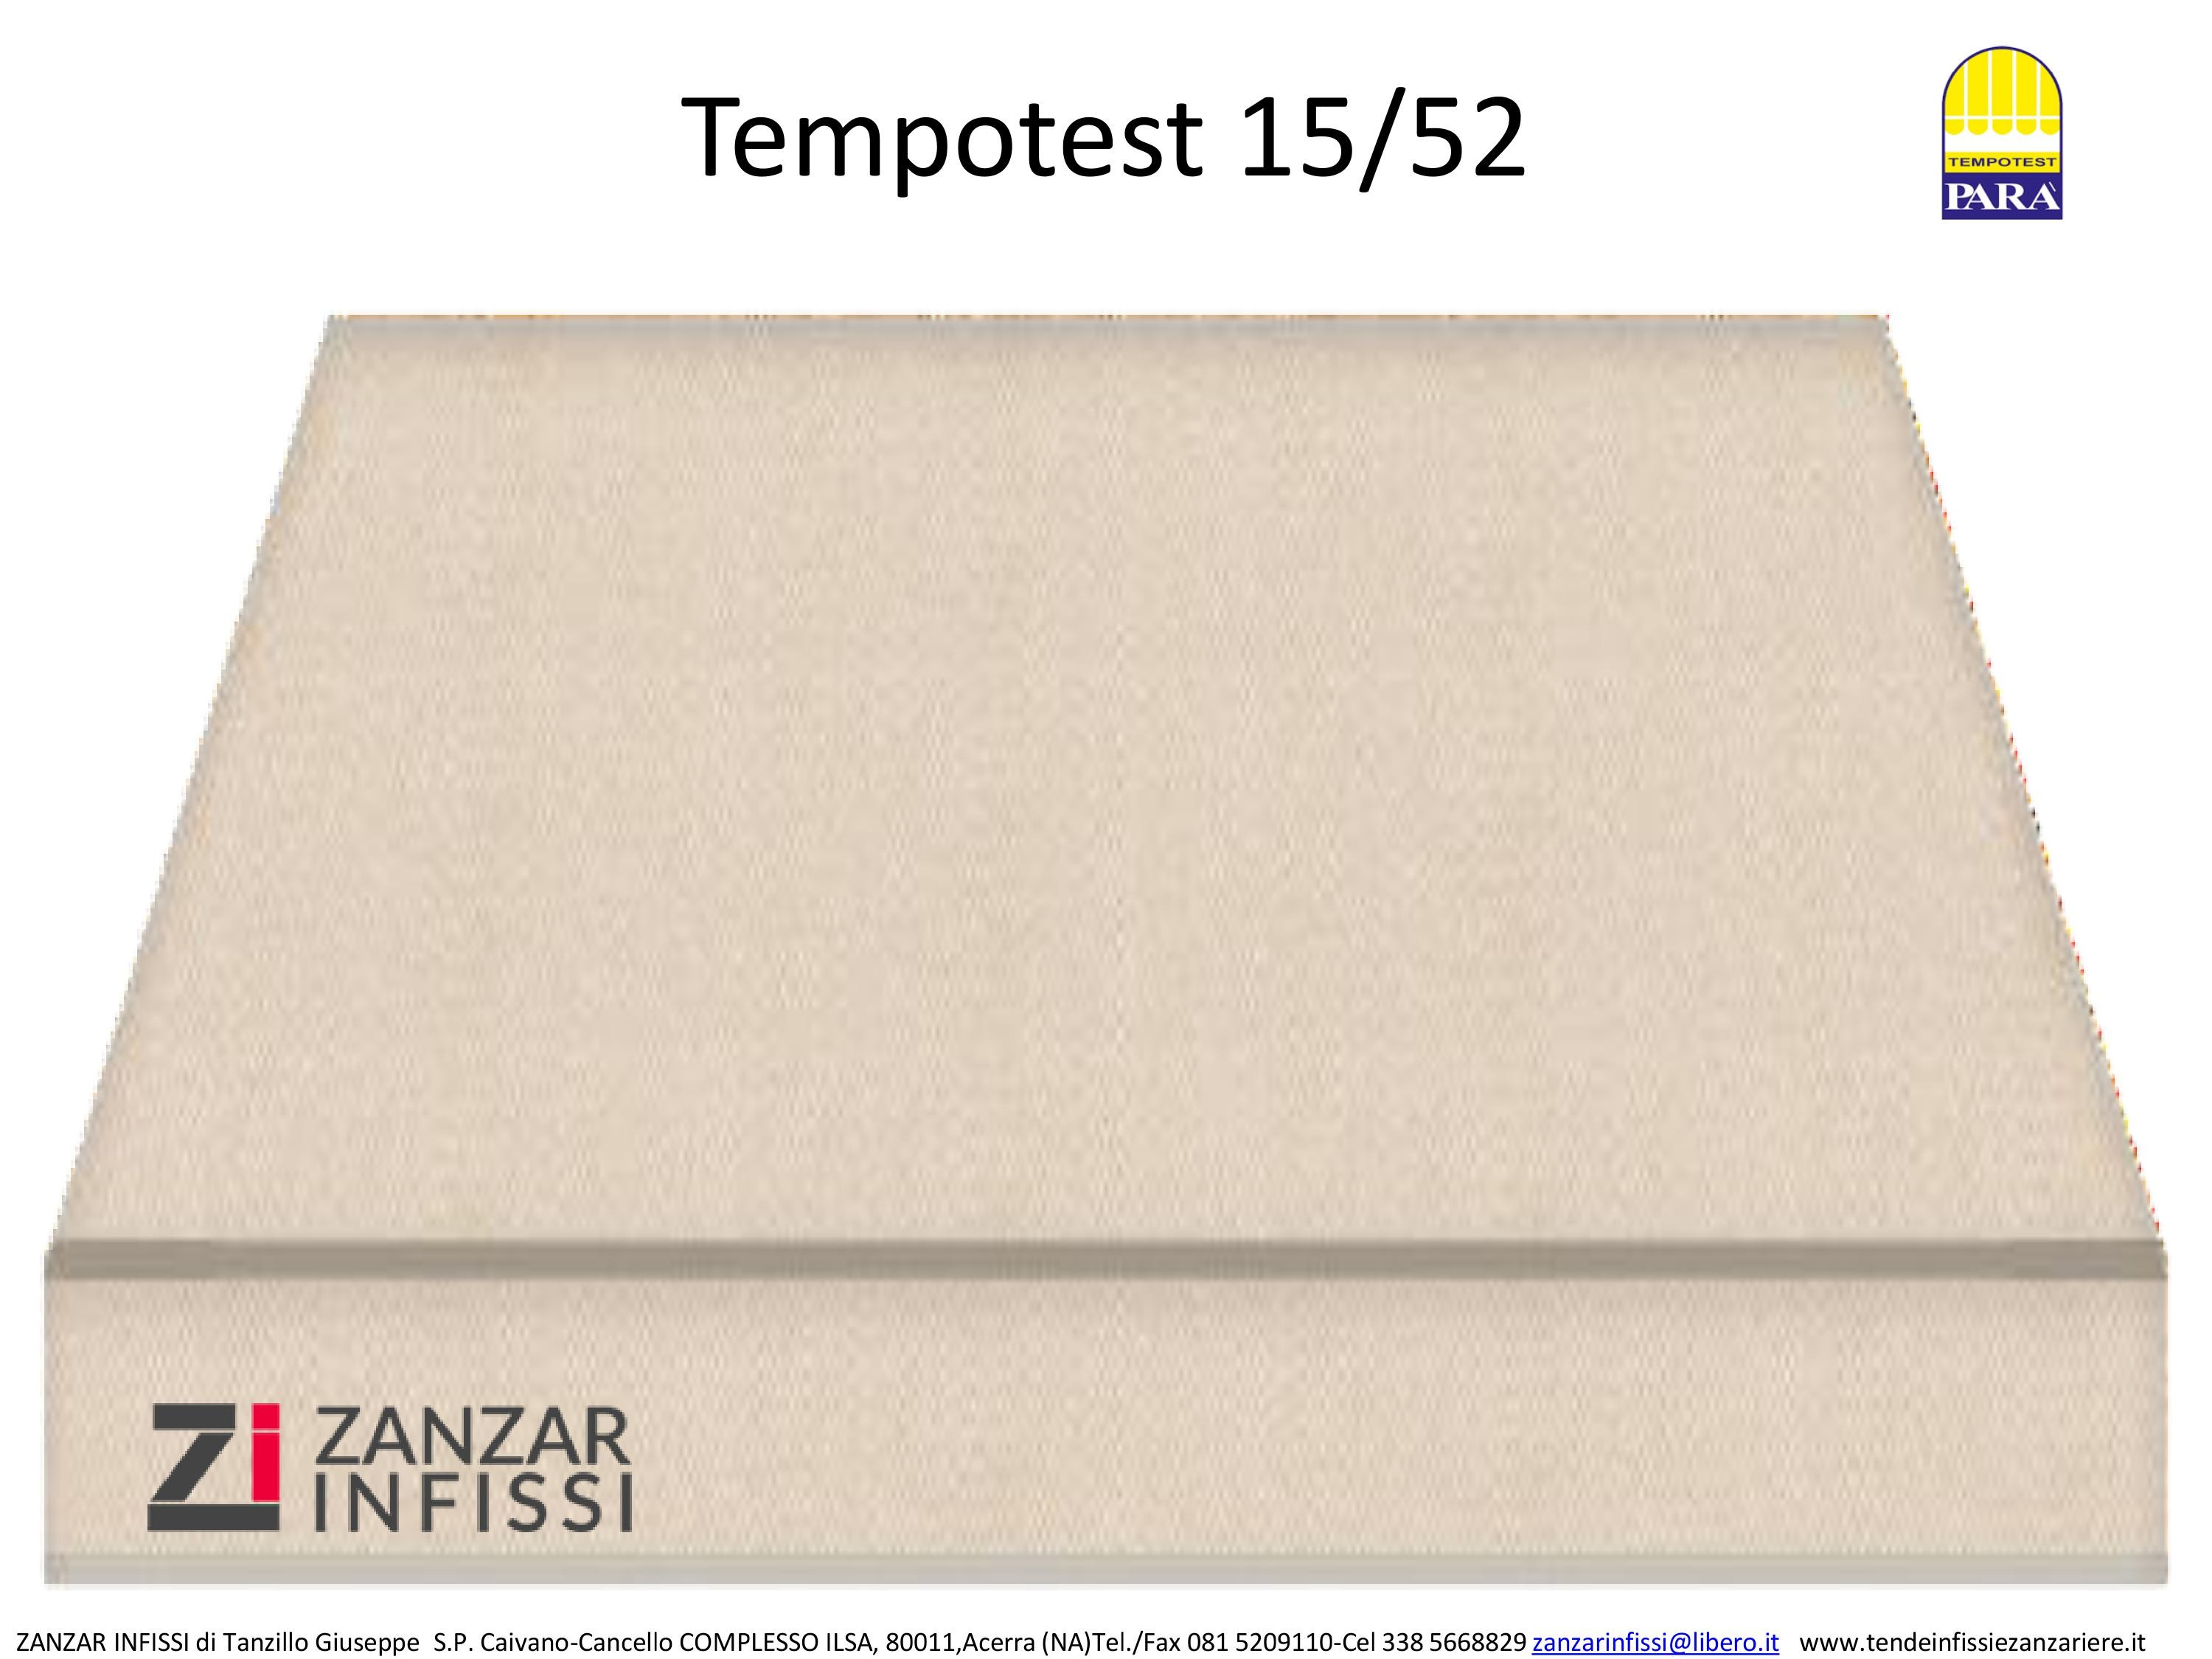 Tempotest 15/52